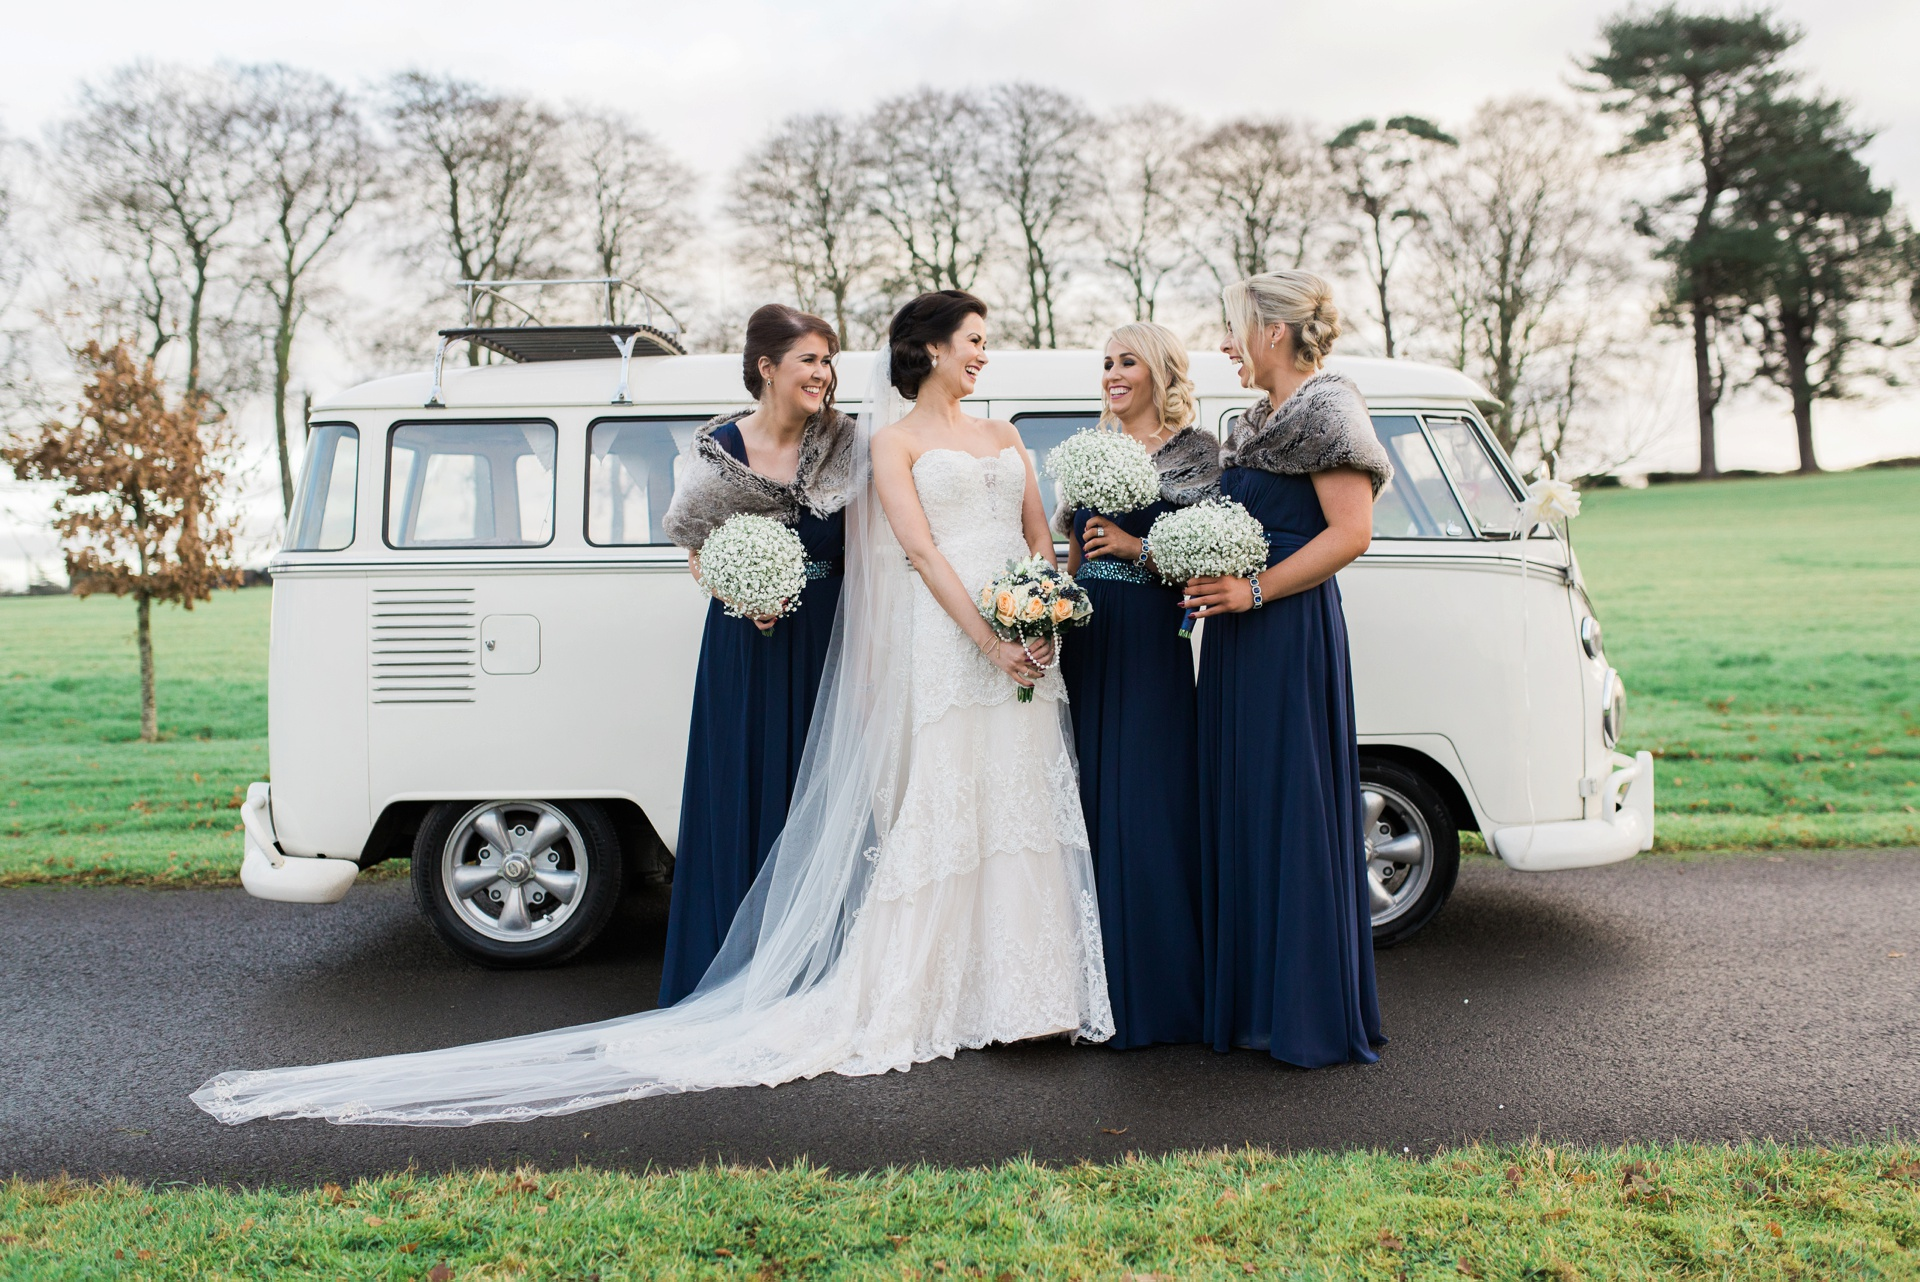 Bride and bridesmaids together beside white Volkswagon camper van